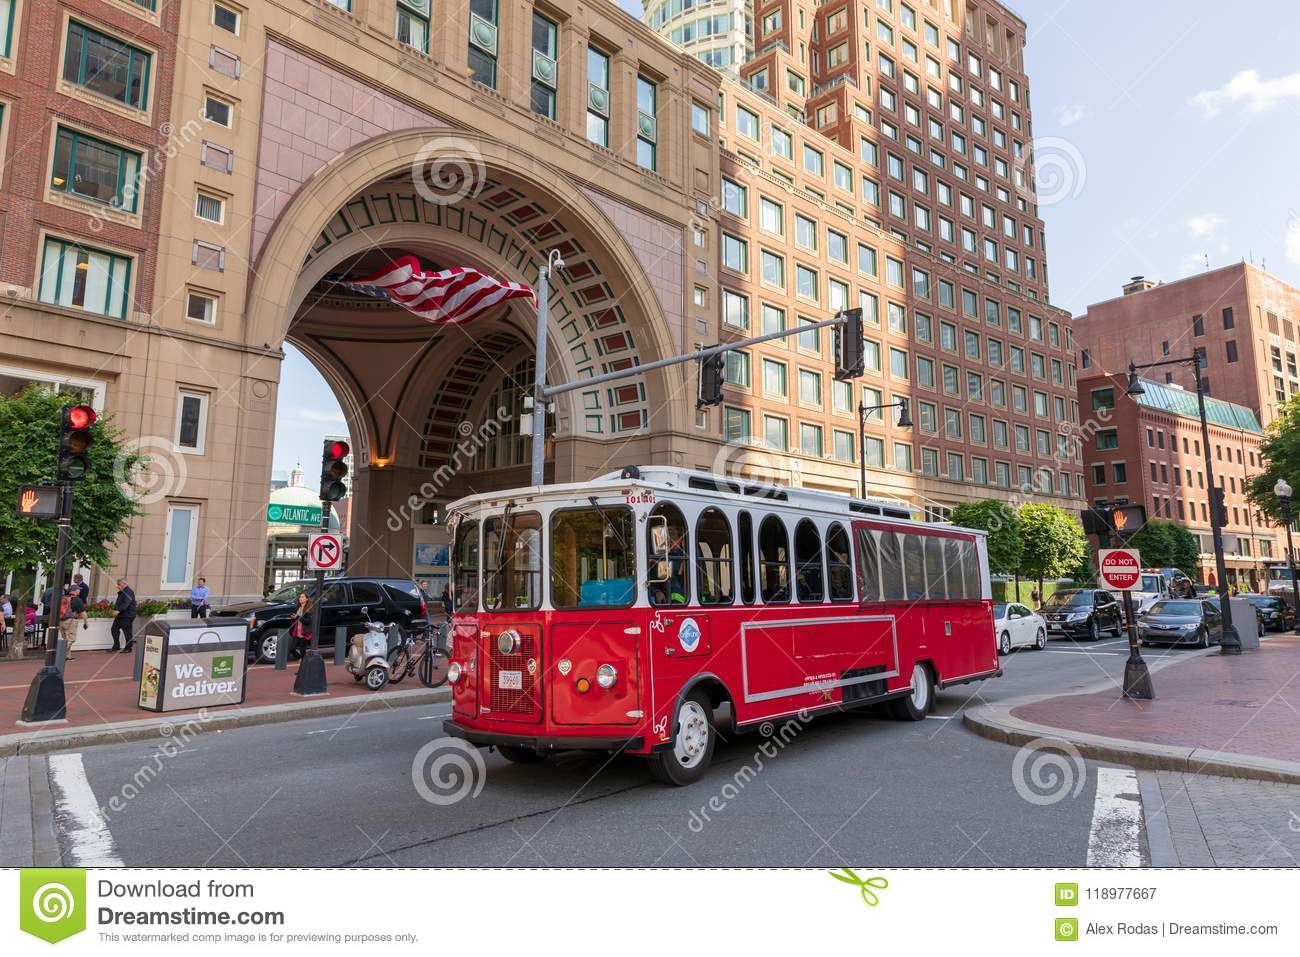 Trolley Tour bus in front of Boston Harbor Hotel